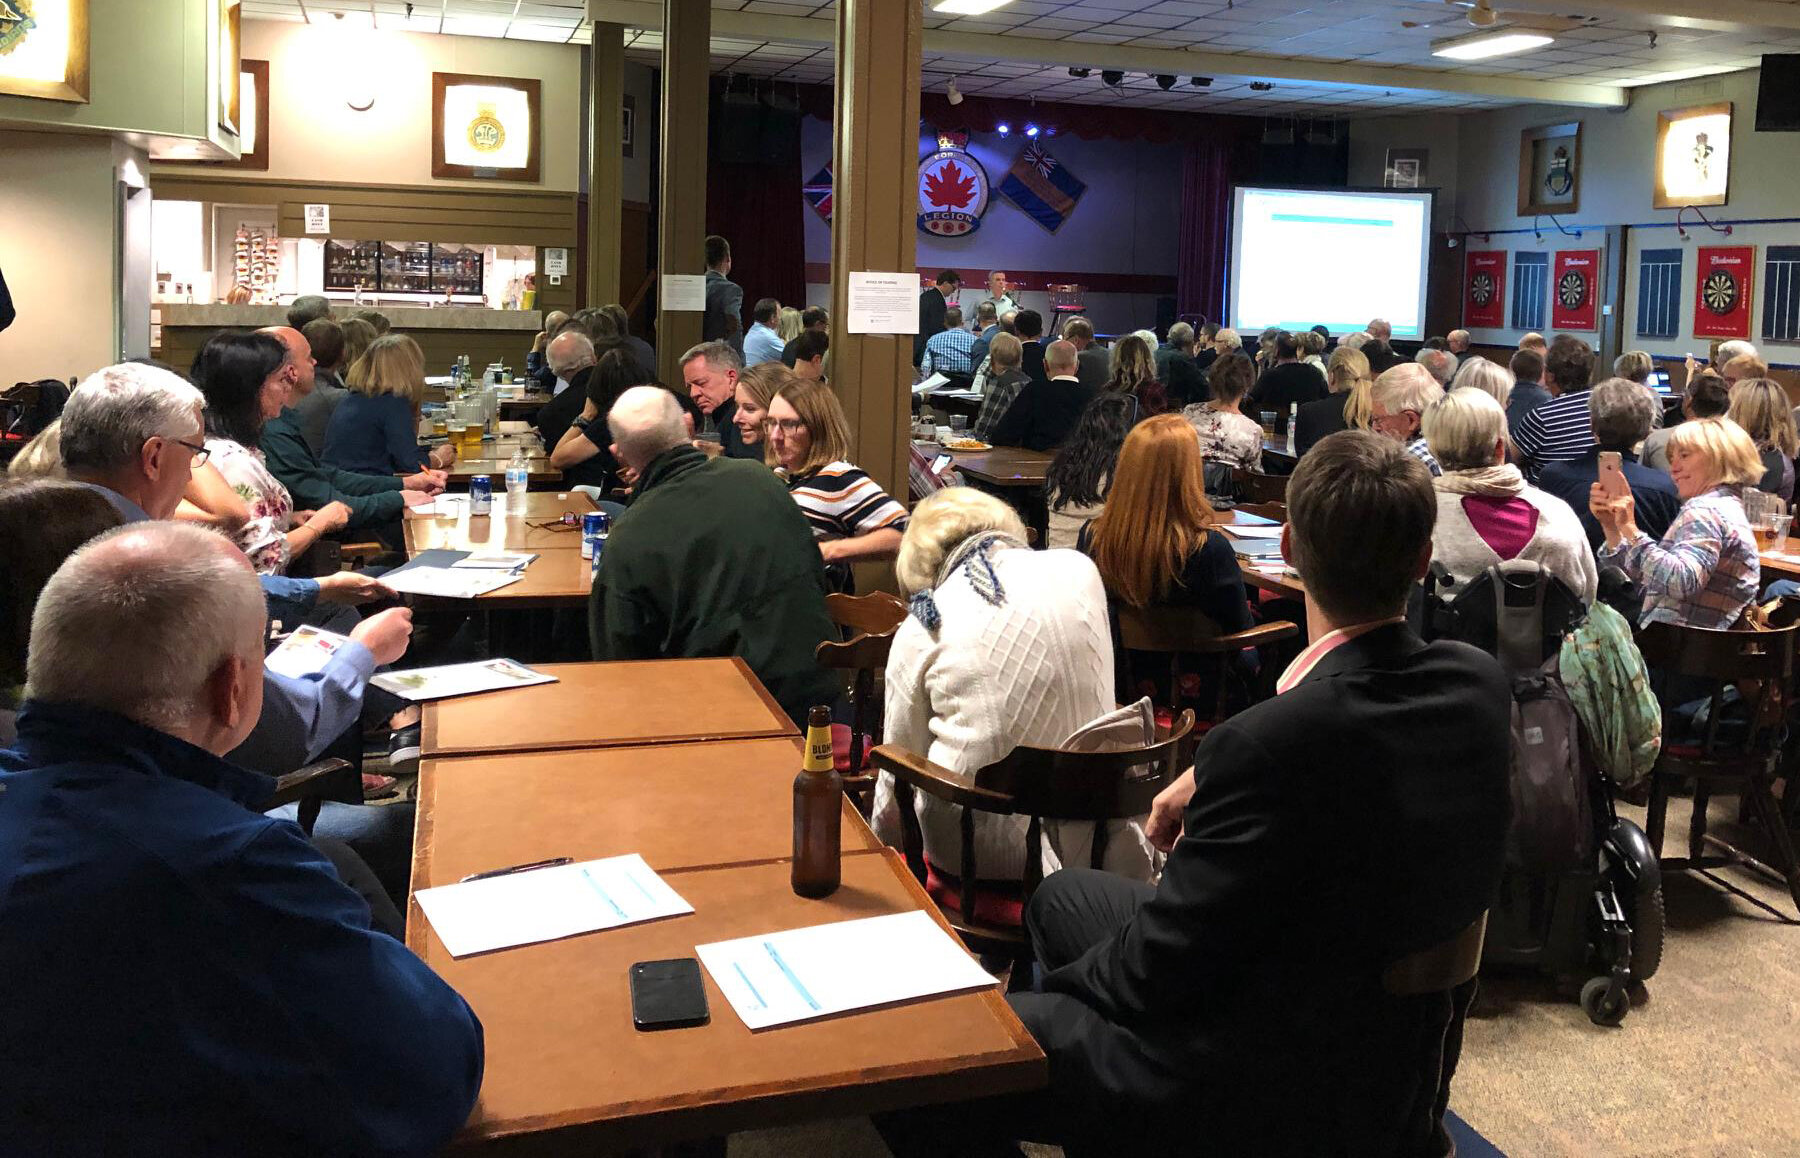 On Thurs I attended the AGM for Calgary River Community Action Group. Great turnout of engaged citizens. Also attending to hear from the residents were MLA Doug Schweitzer, MLA Ric McIver, and Councillor Jeromy Farkas.